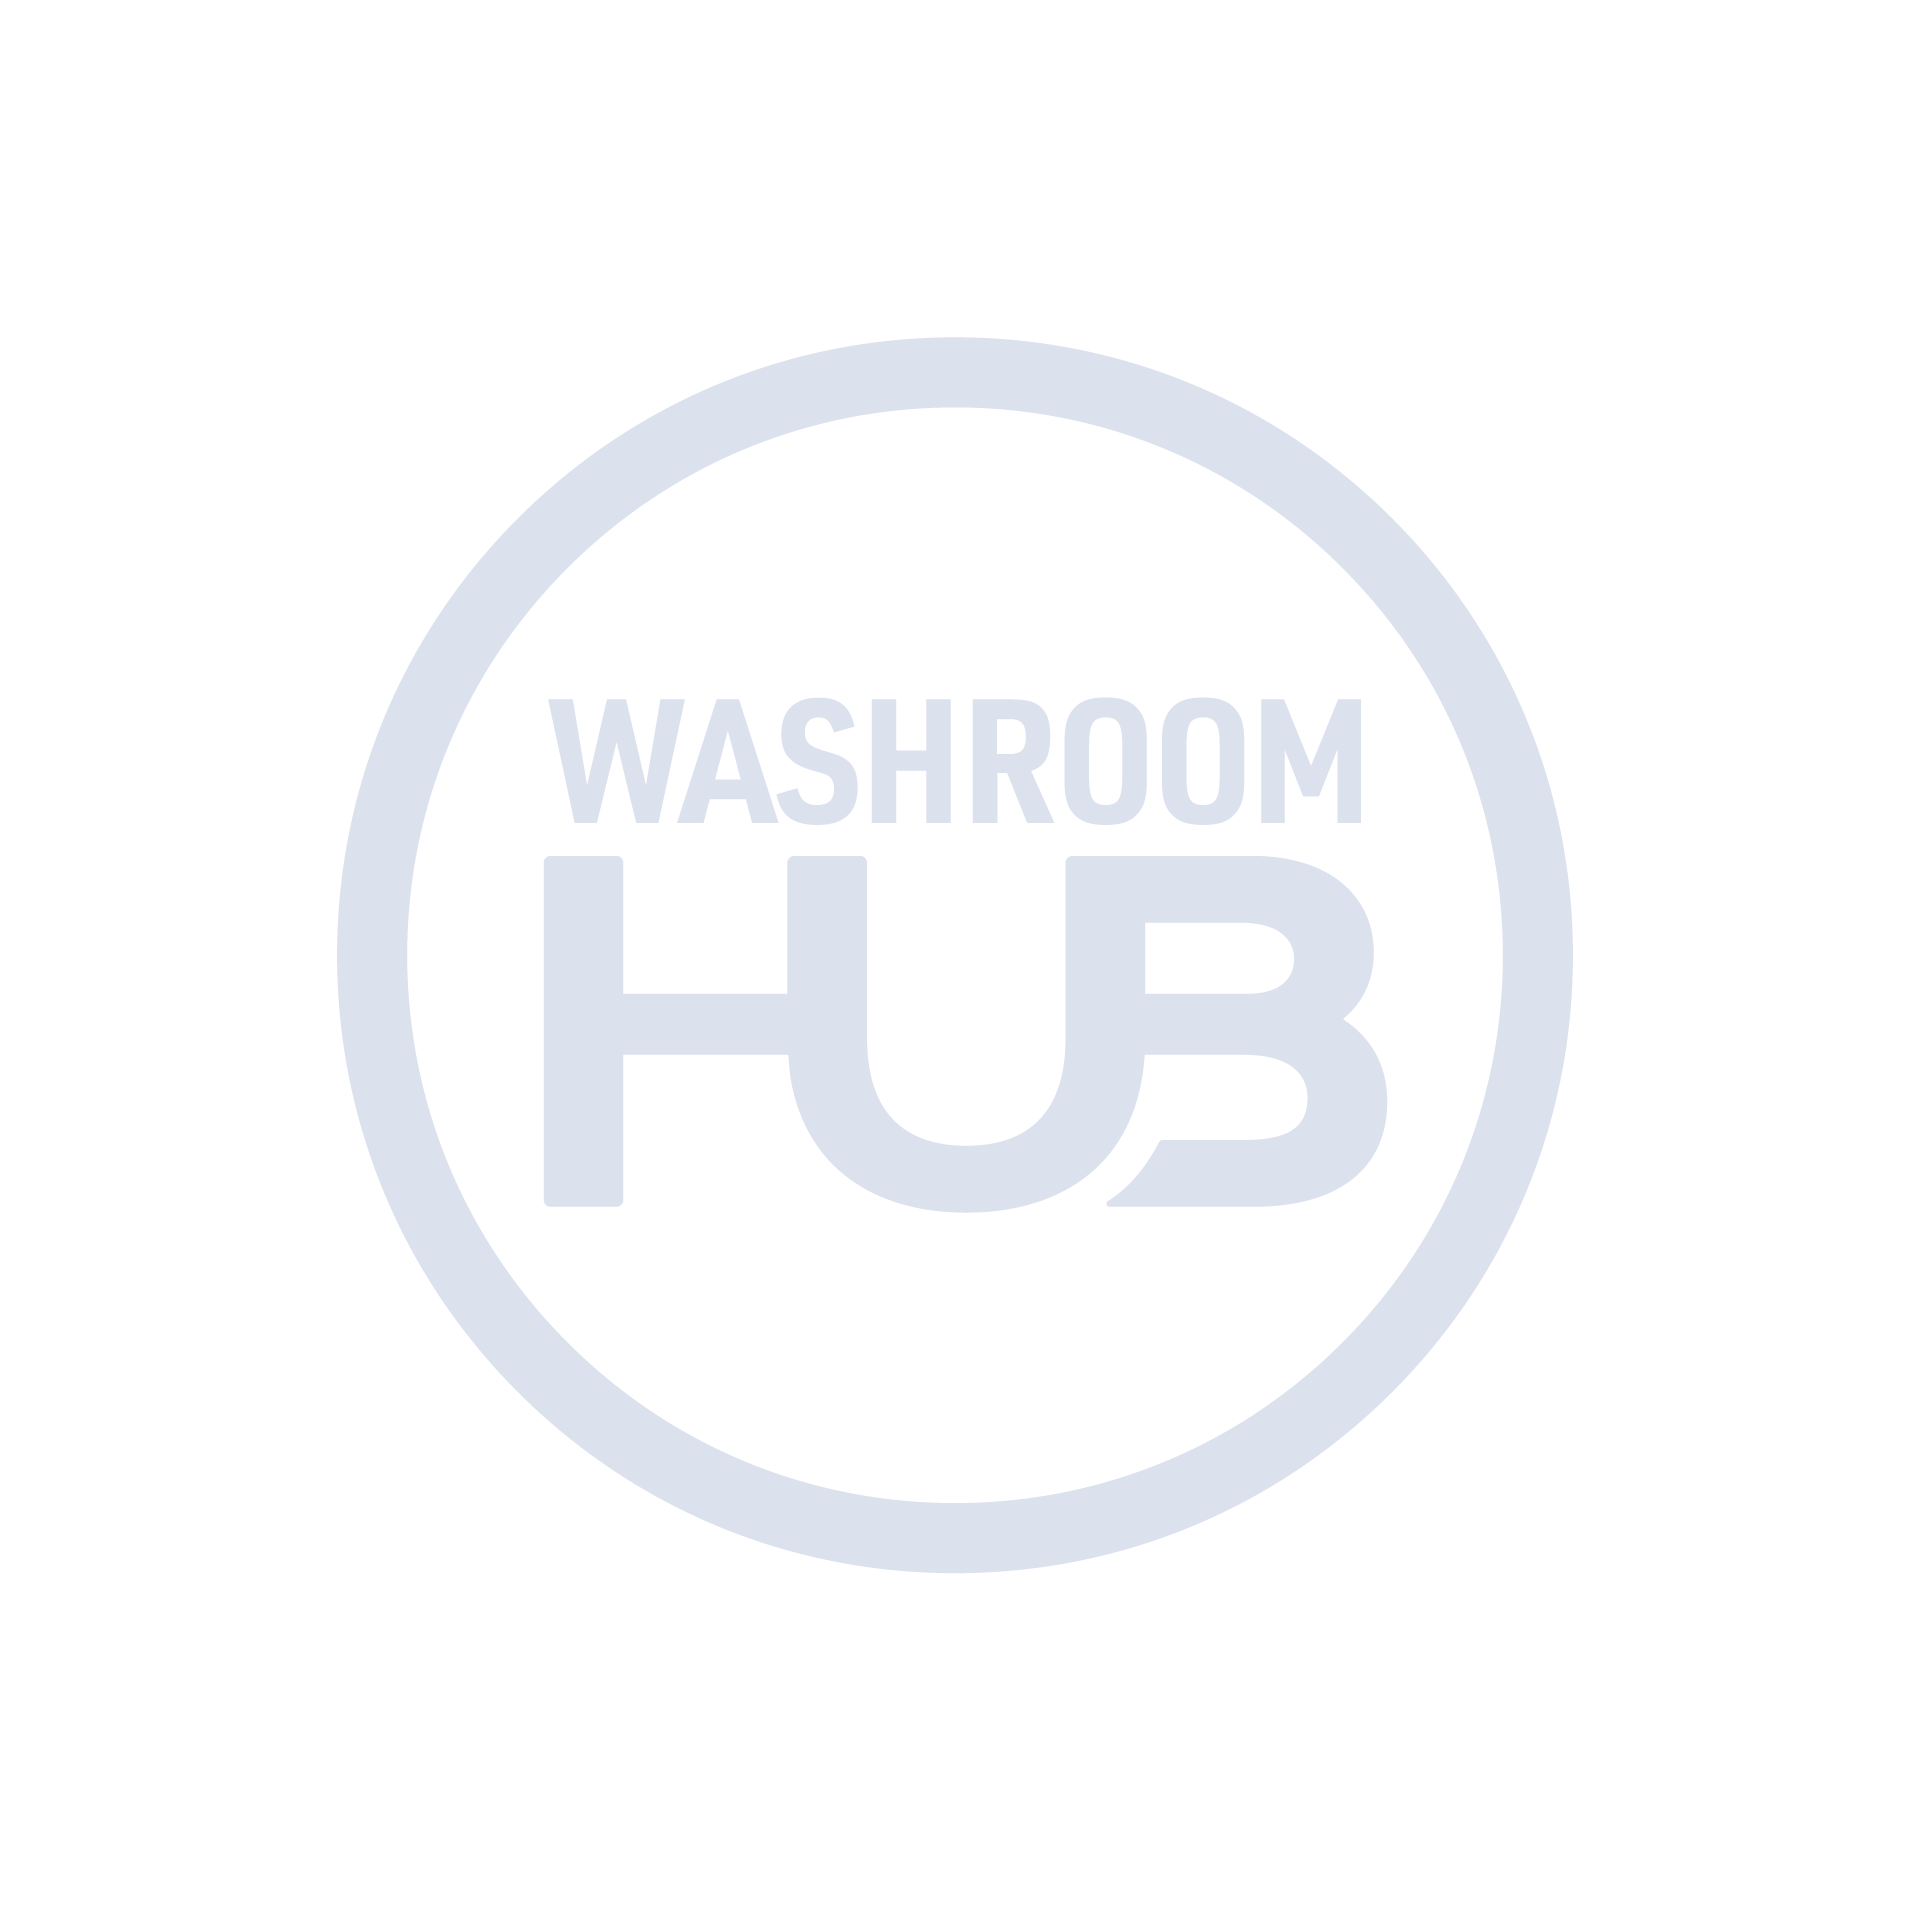 Automatic Soap Dispenser | 1100ml Capacity | Wall Mounted - Image1